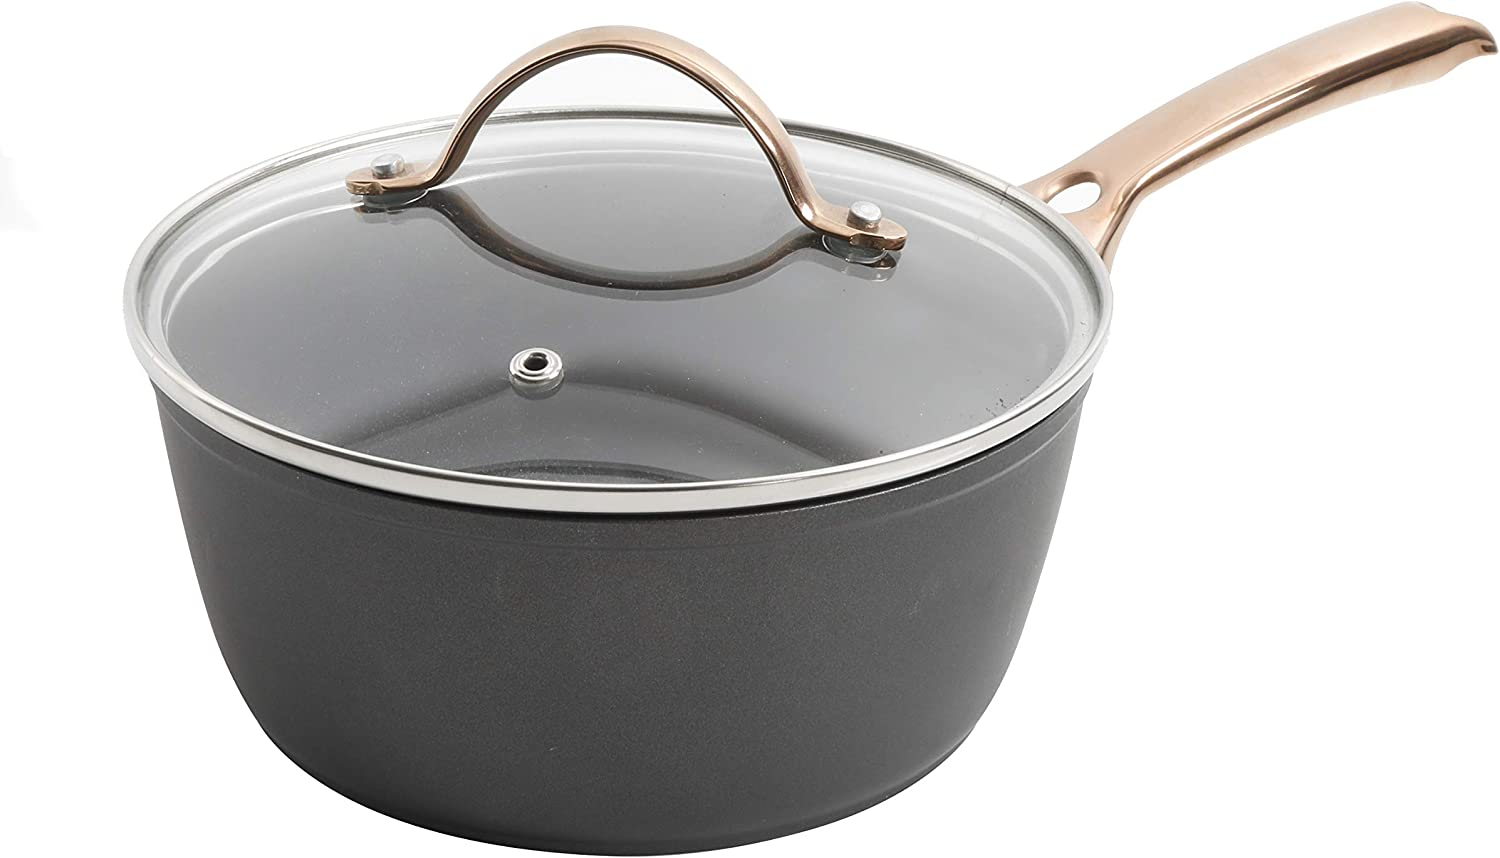 Oster Allsberg Forged Aluminum Ceramic Titanium Non-Stick Special sale Spring new work one after another item Cookwa